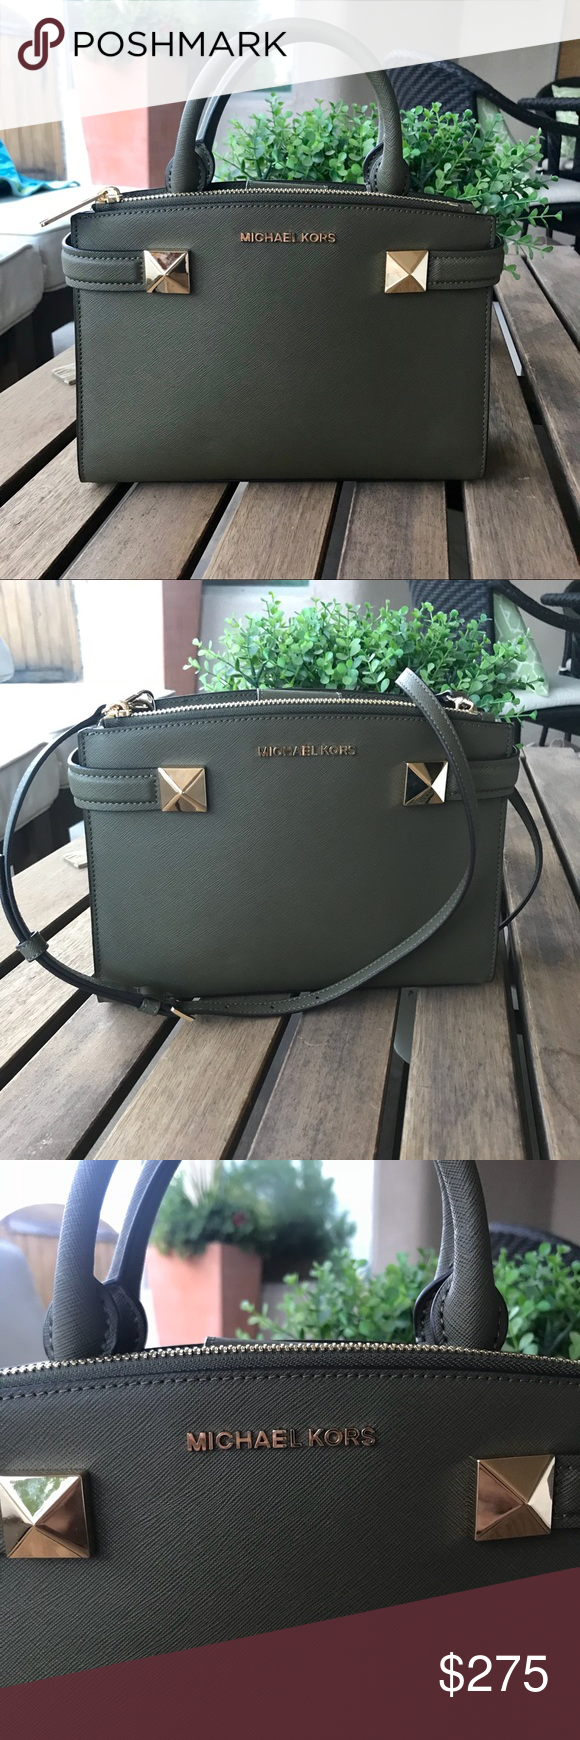 04b4ea8029d5c9 NWT Michael Kors Karla Small Olive Green Satchel Make me an offer please :)  trying